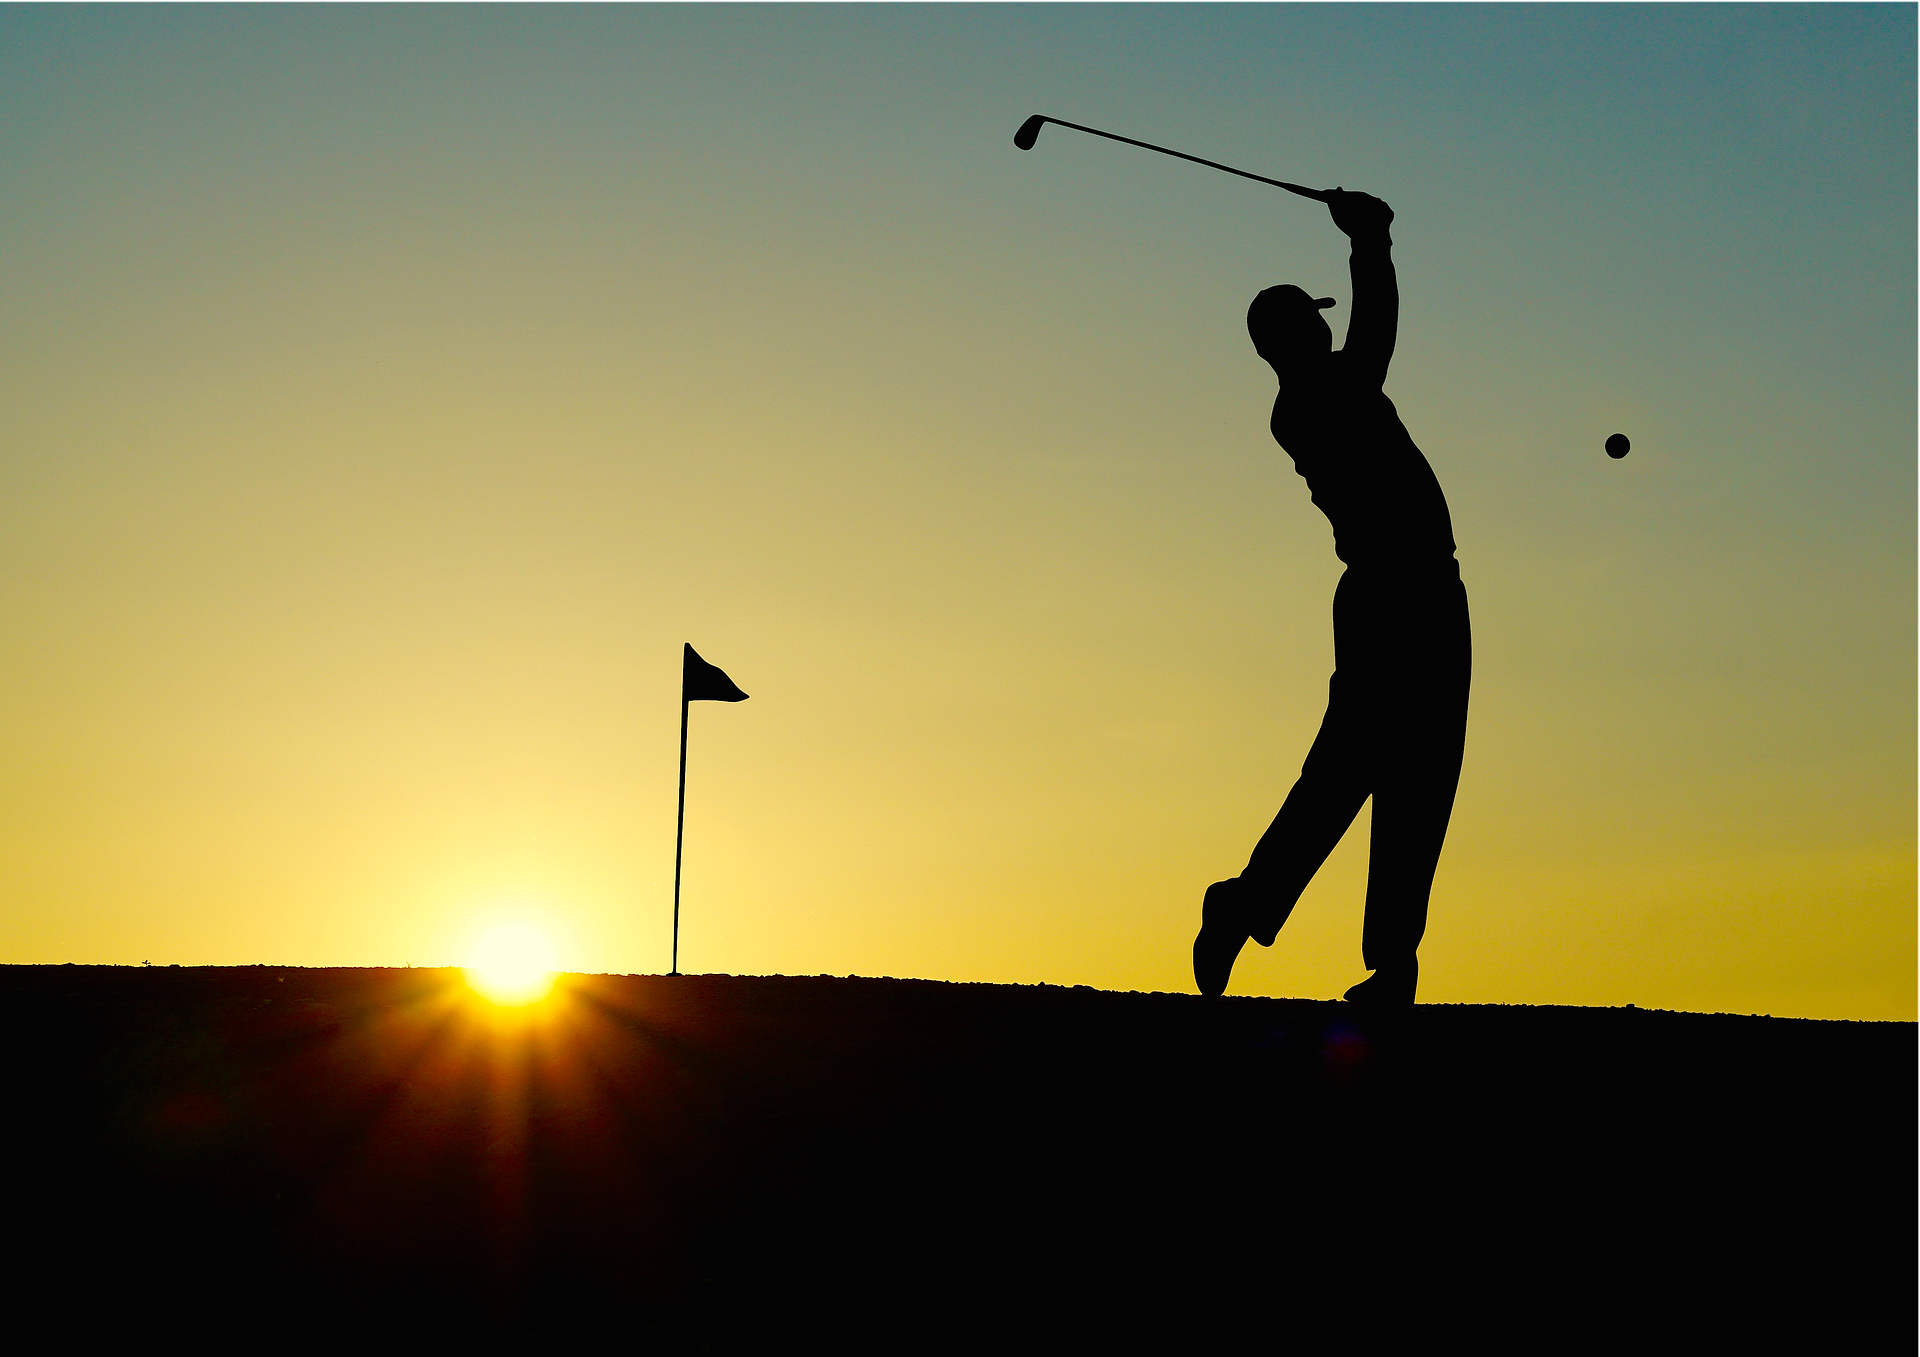 golf-787826_1920.png